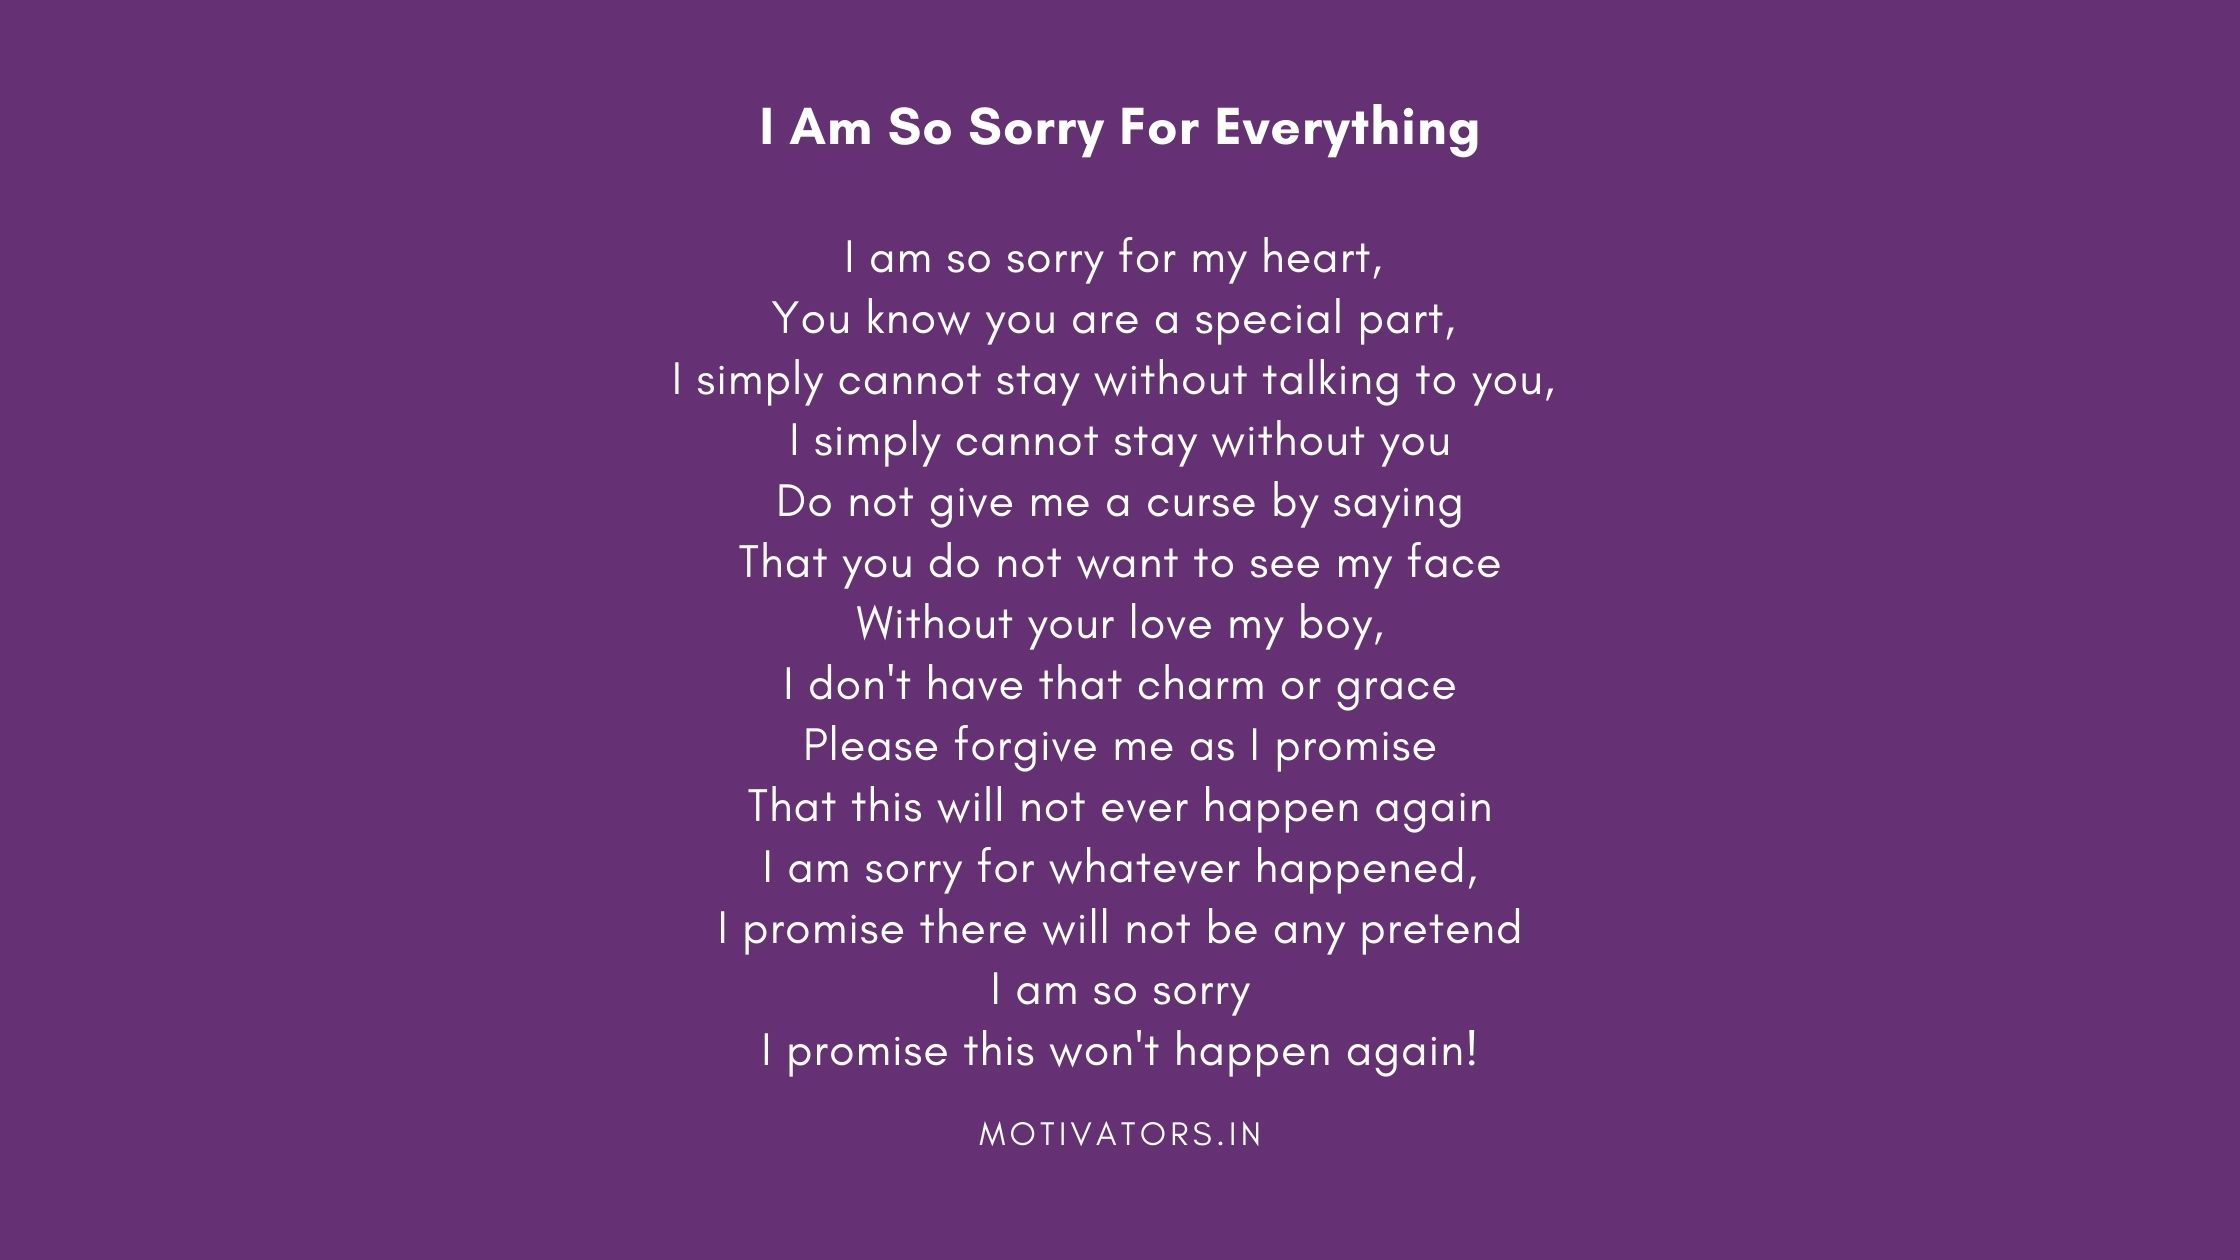 I Am So Sorry For Everything